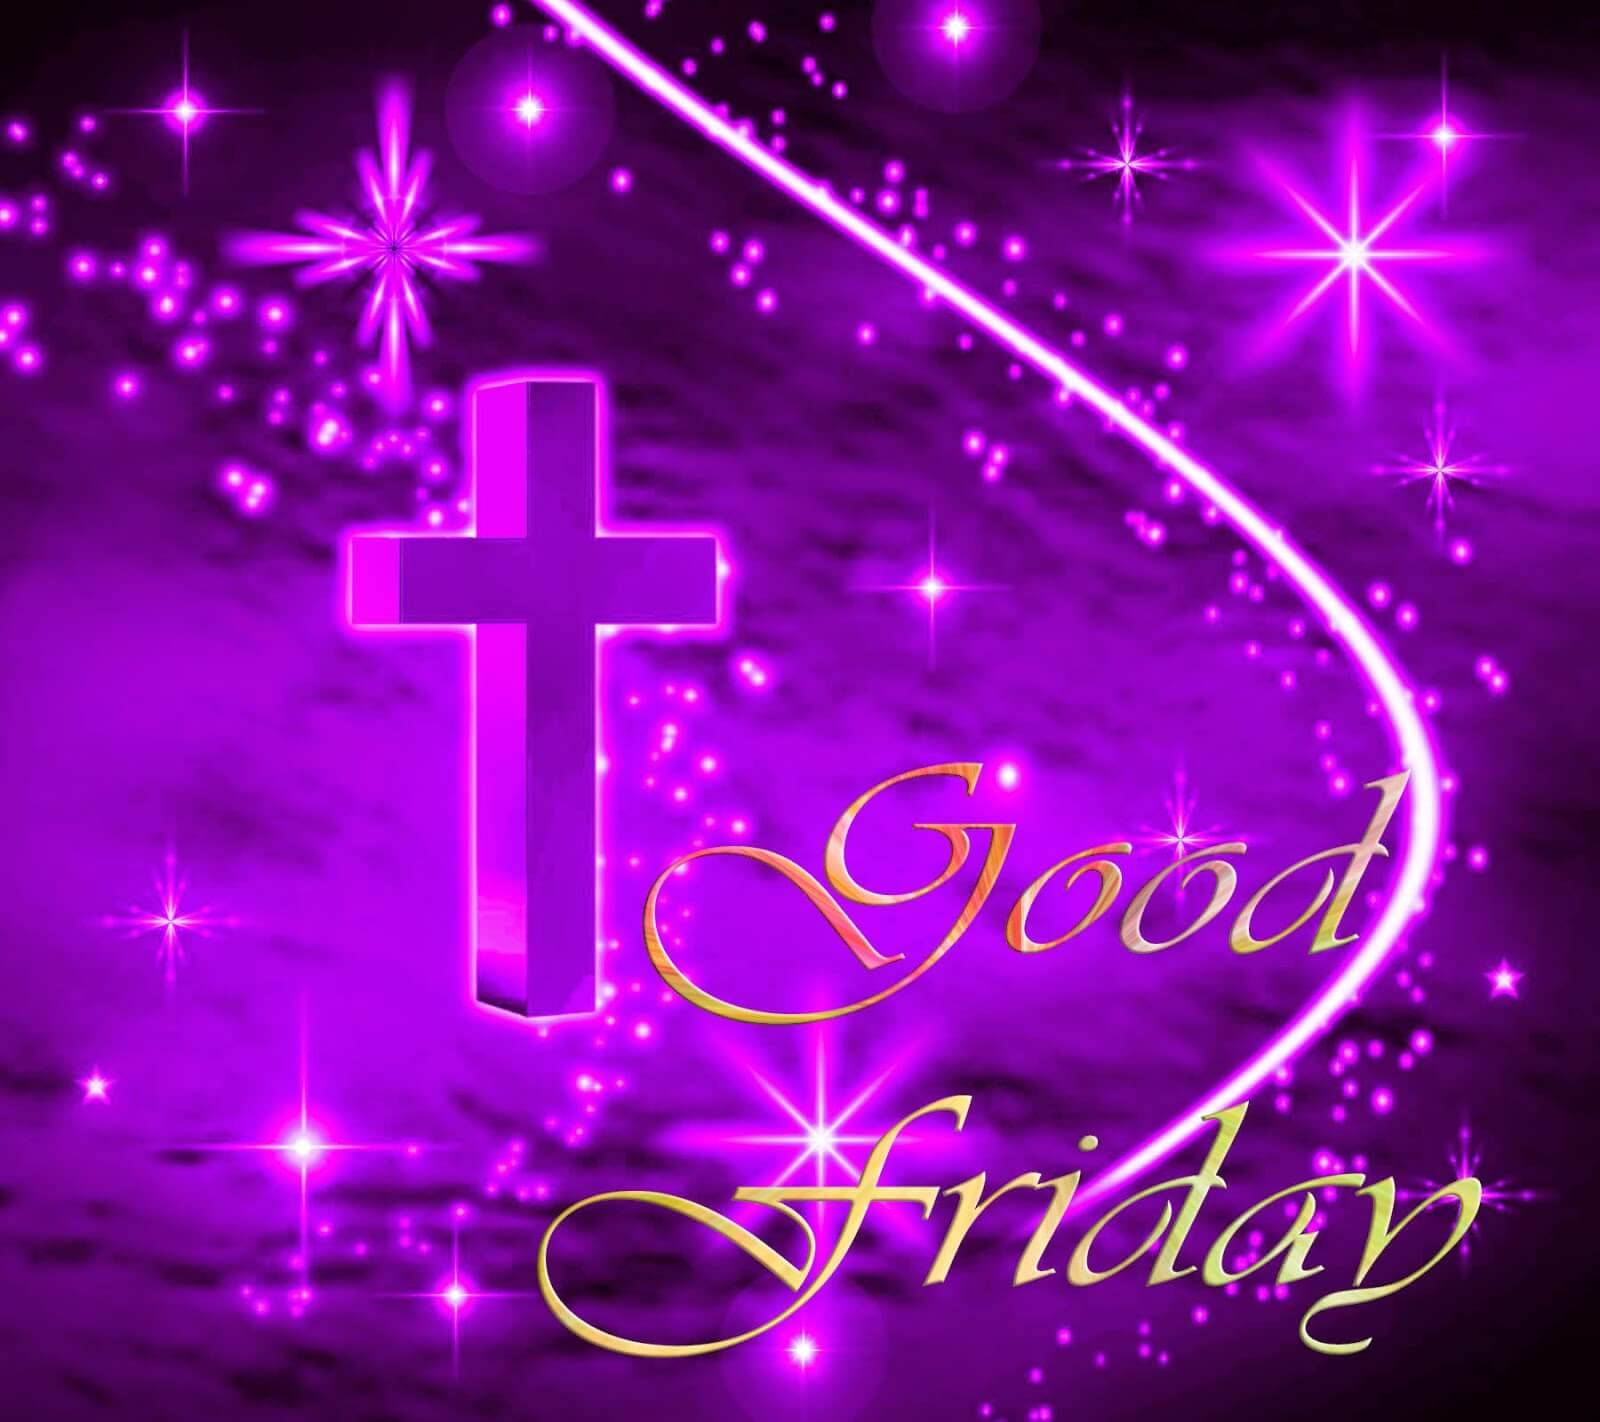 Good Friday Purple Cross Wallpaper Desktop Hd